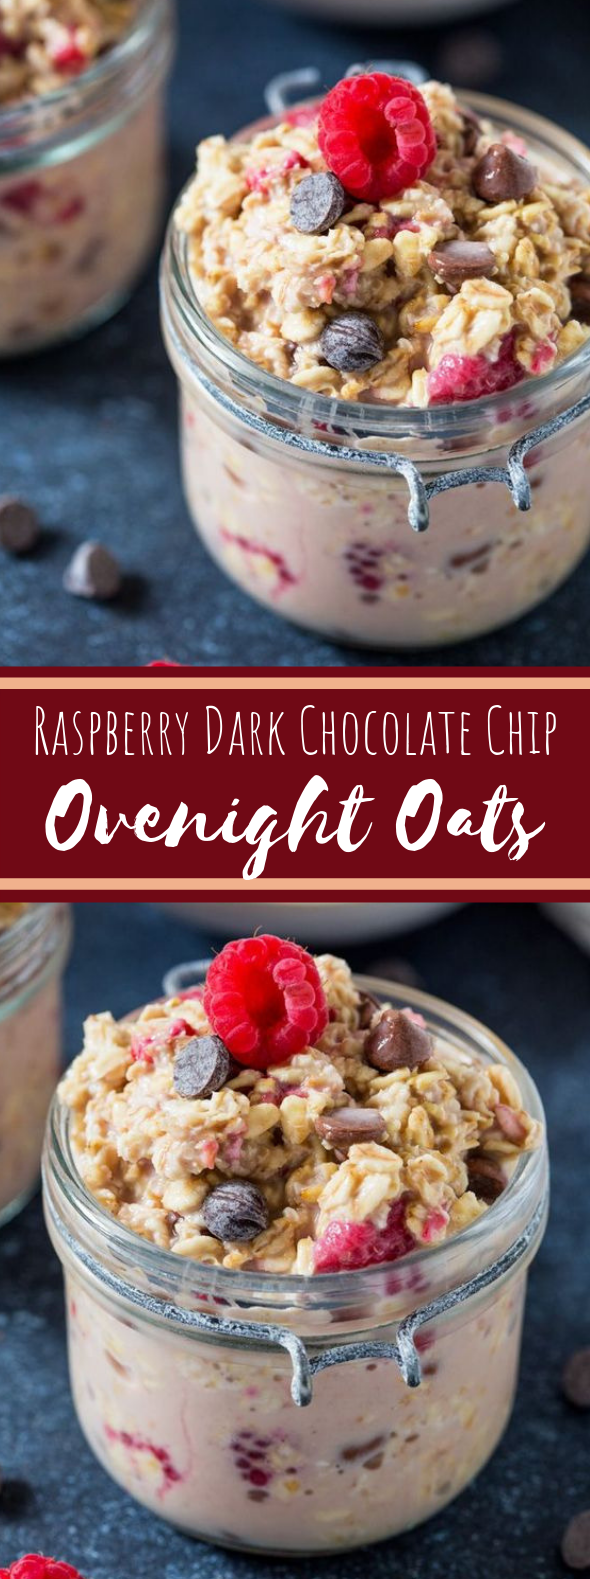 Raspberry Dark Chocolate Chip Overnight Oats #breakfast #healthy